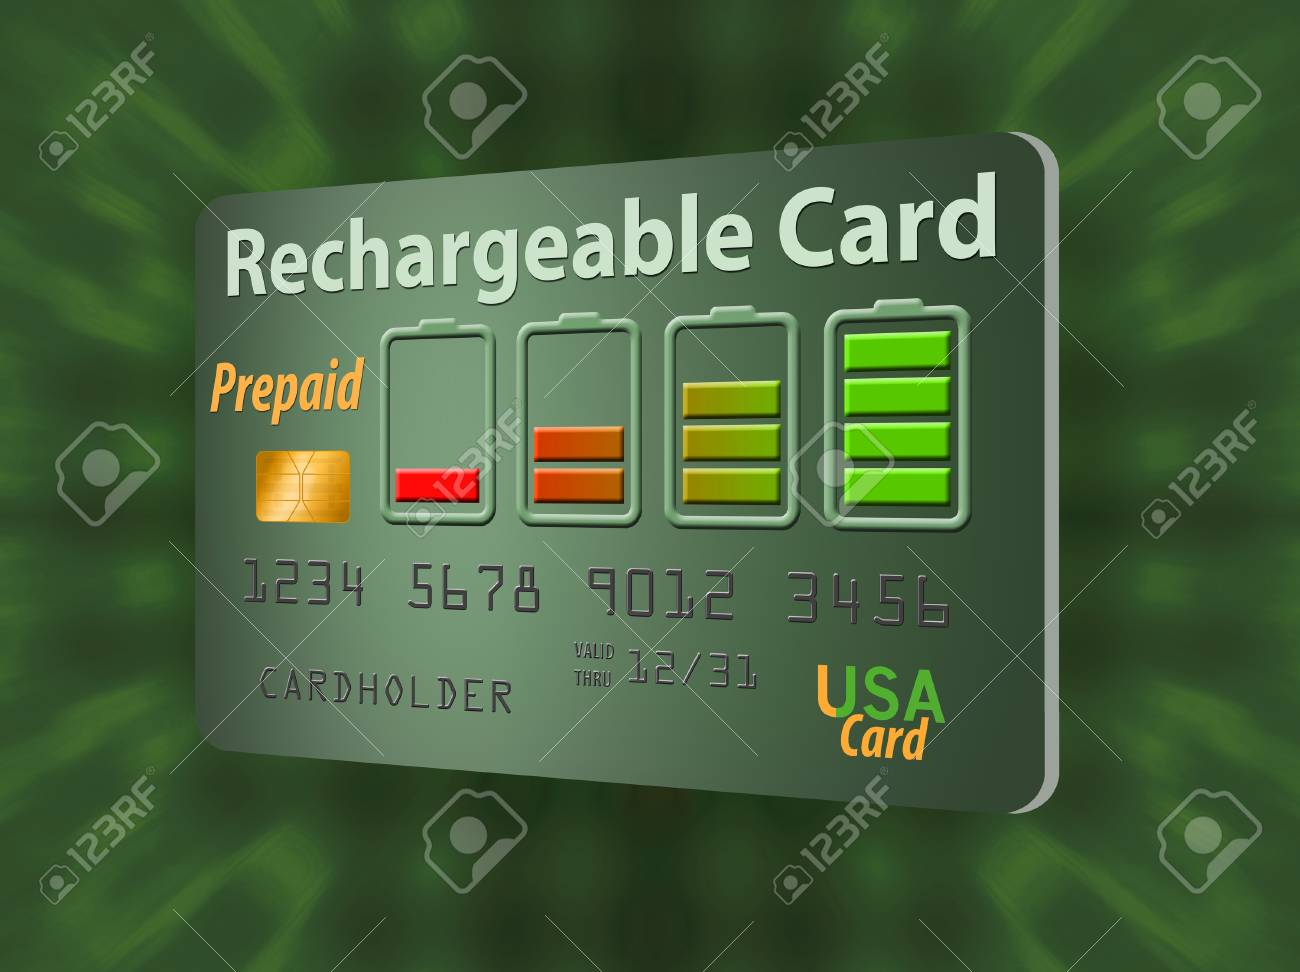 Prepaid Credit Card >> Here Is A Rechargeable Refillable Prepaid Credit Card The Recharge